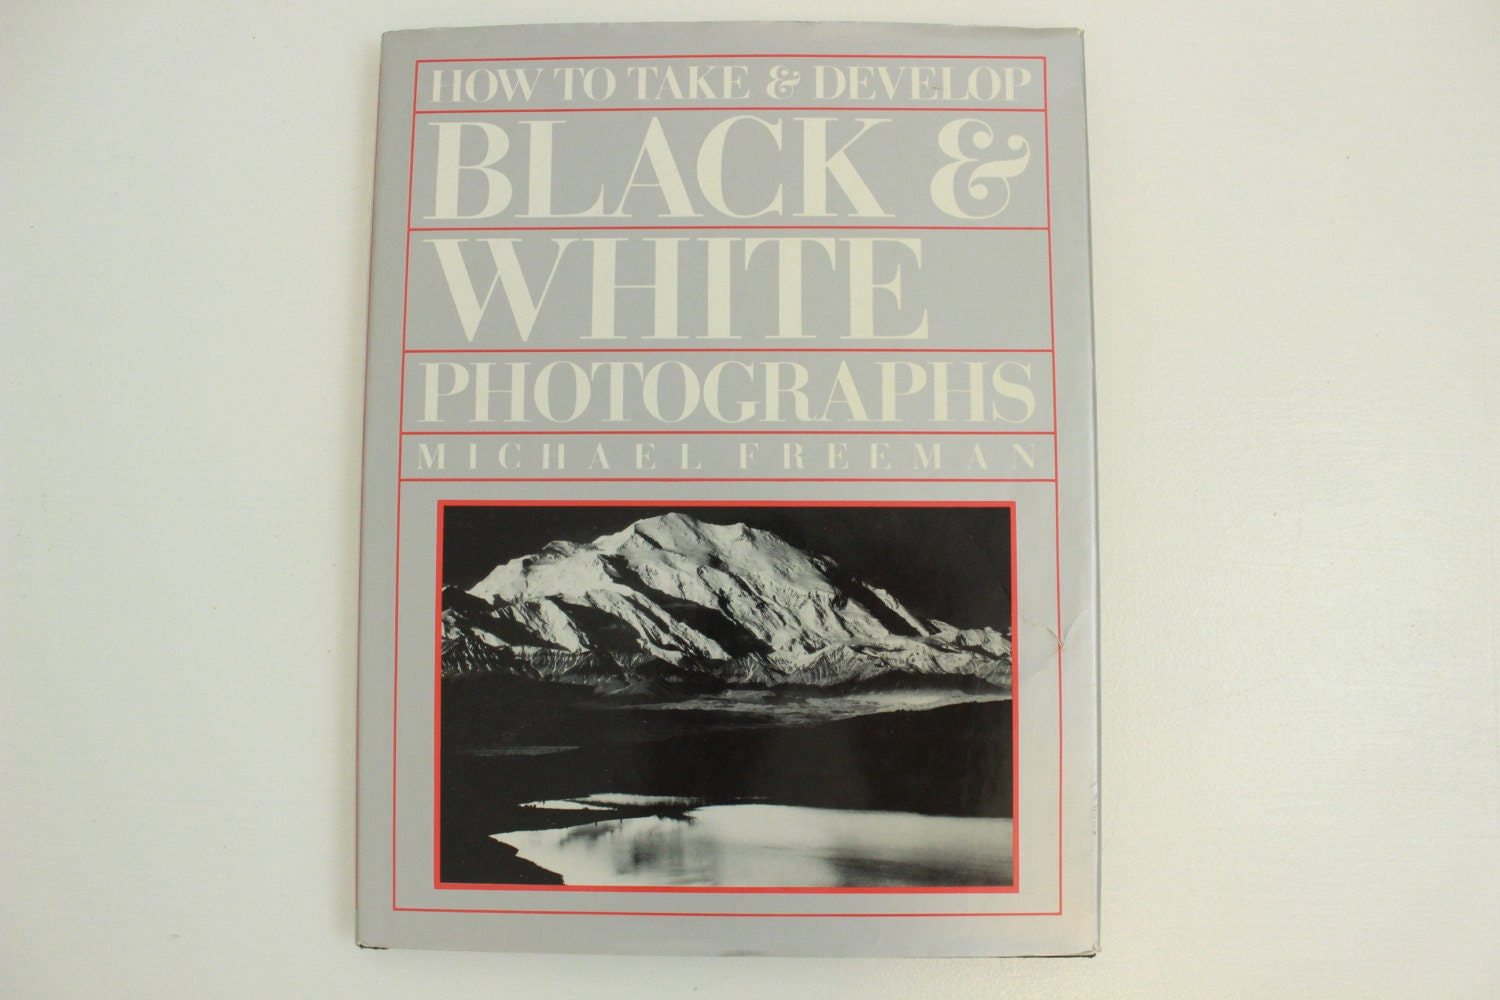 How to take and develop black white photographs by michael freeman monochrome images techniques hardbound vintage book film 1988